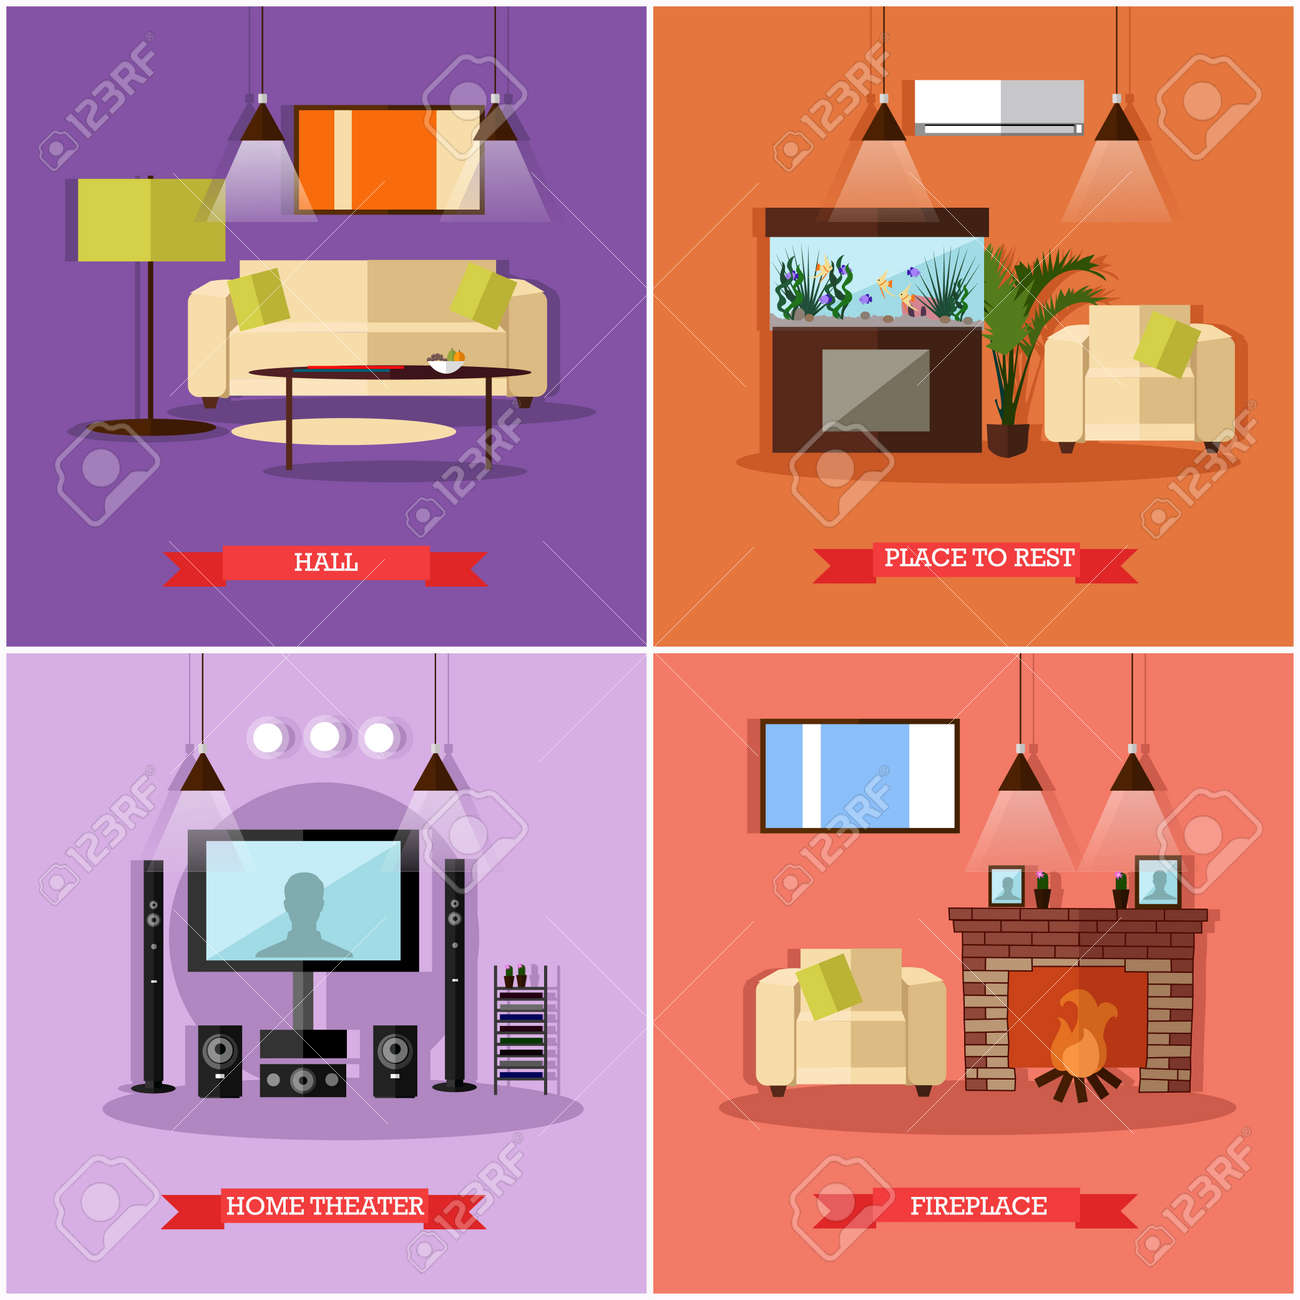 Vector Set Of Posters Banners With Home Interior Design Elements In Flat Style Place